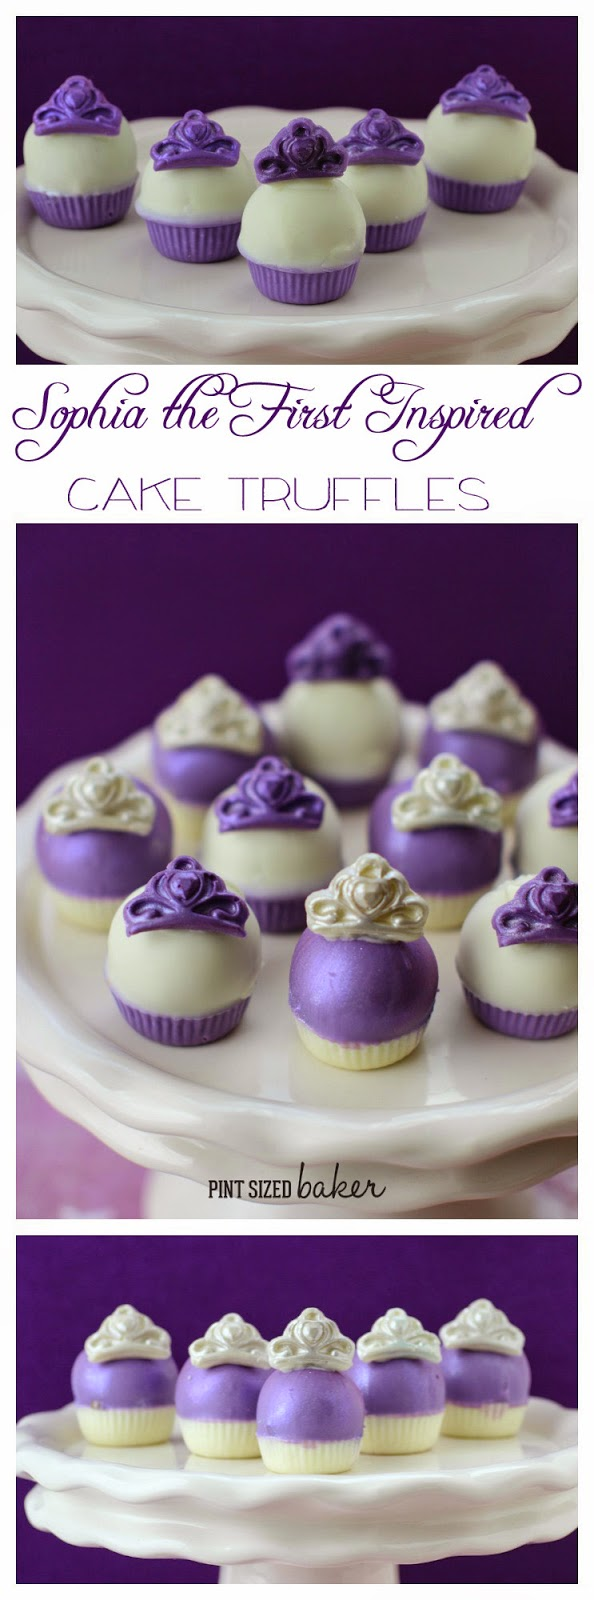 These Sophia the First Inspired Cake Truffles are going to have all the little princesses pleased at the next birthday party!